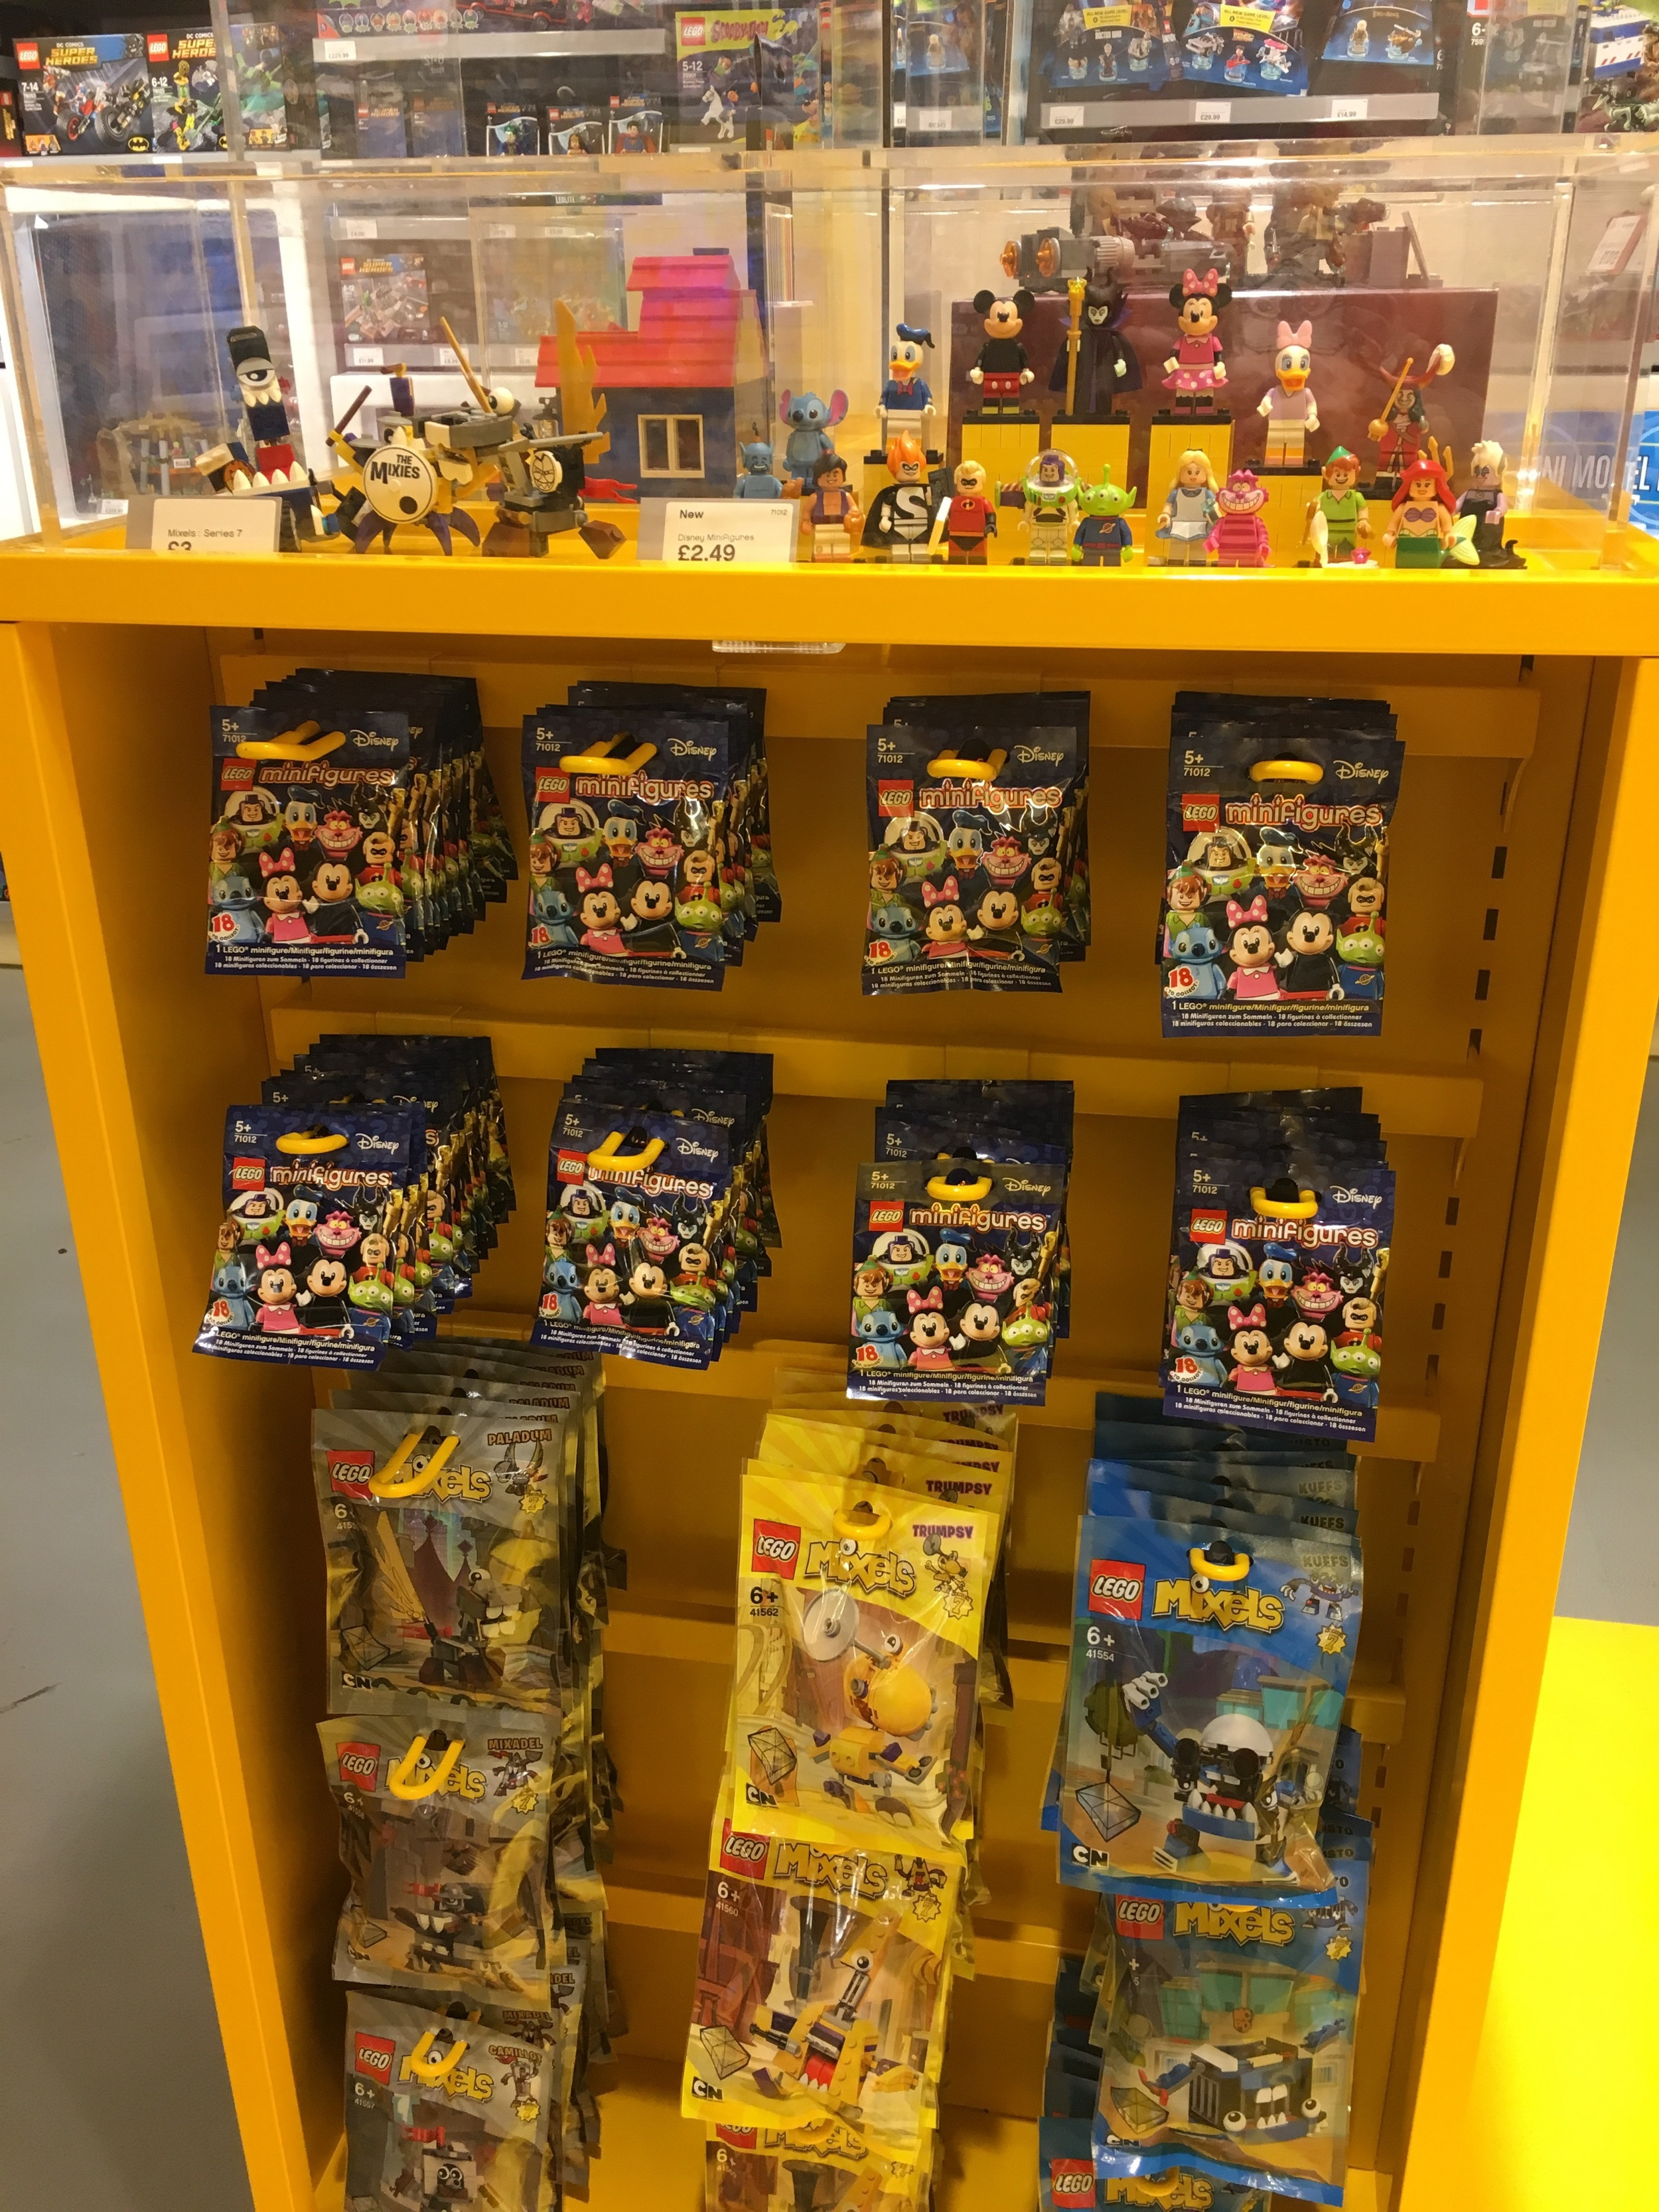 The Disney Lego Minifigures are back in stock after selling out after an hour when there were released